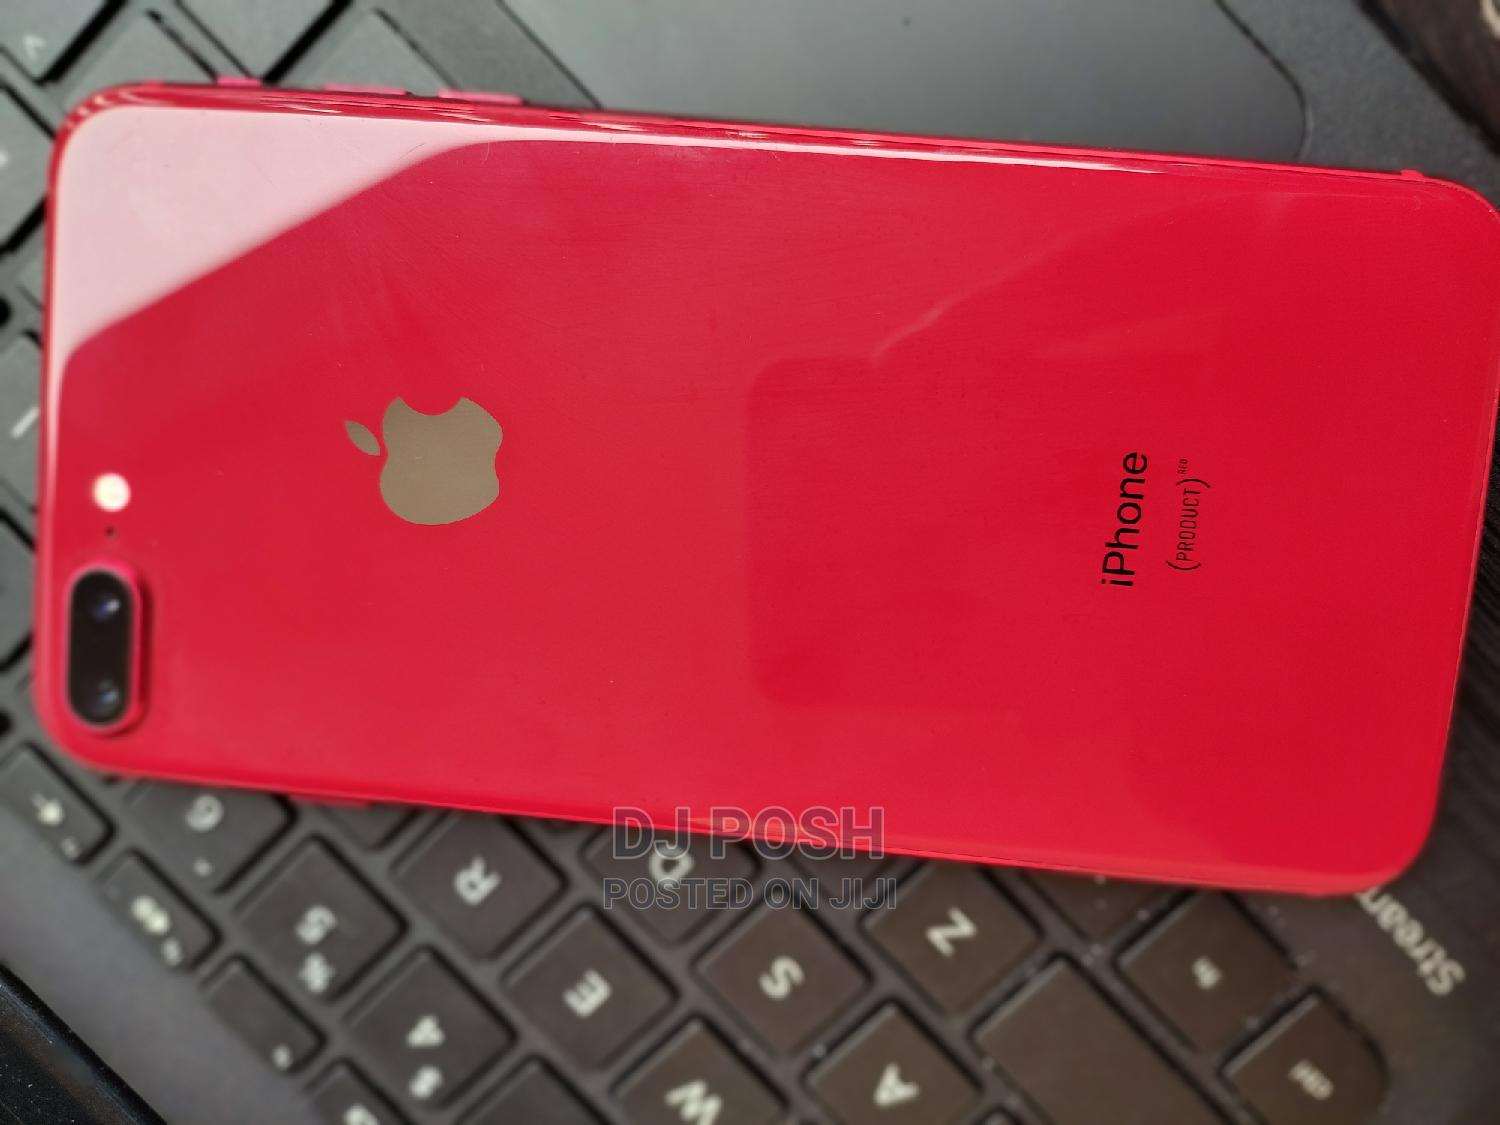 Apple iPhone 8 Plus 64 GB Red | Mobile Phones for sale in Onitsha, Anambra State, Nigeria